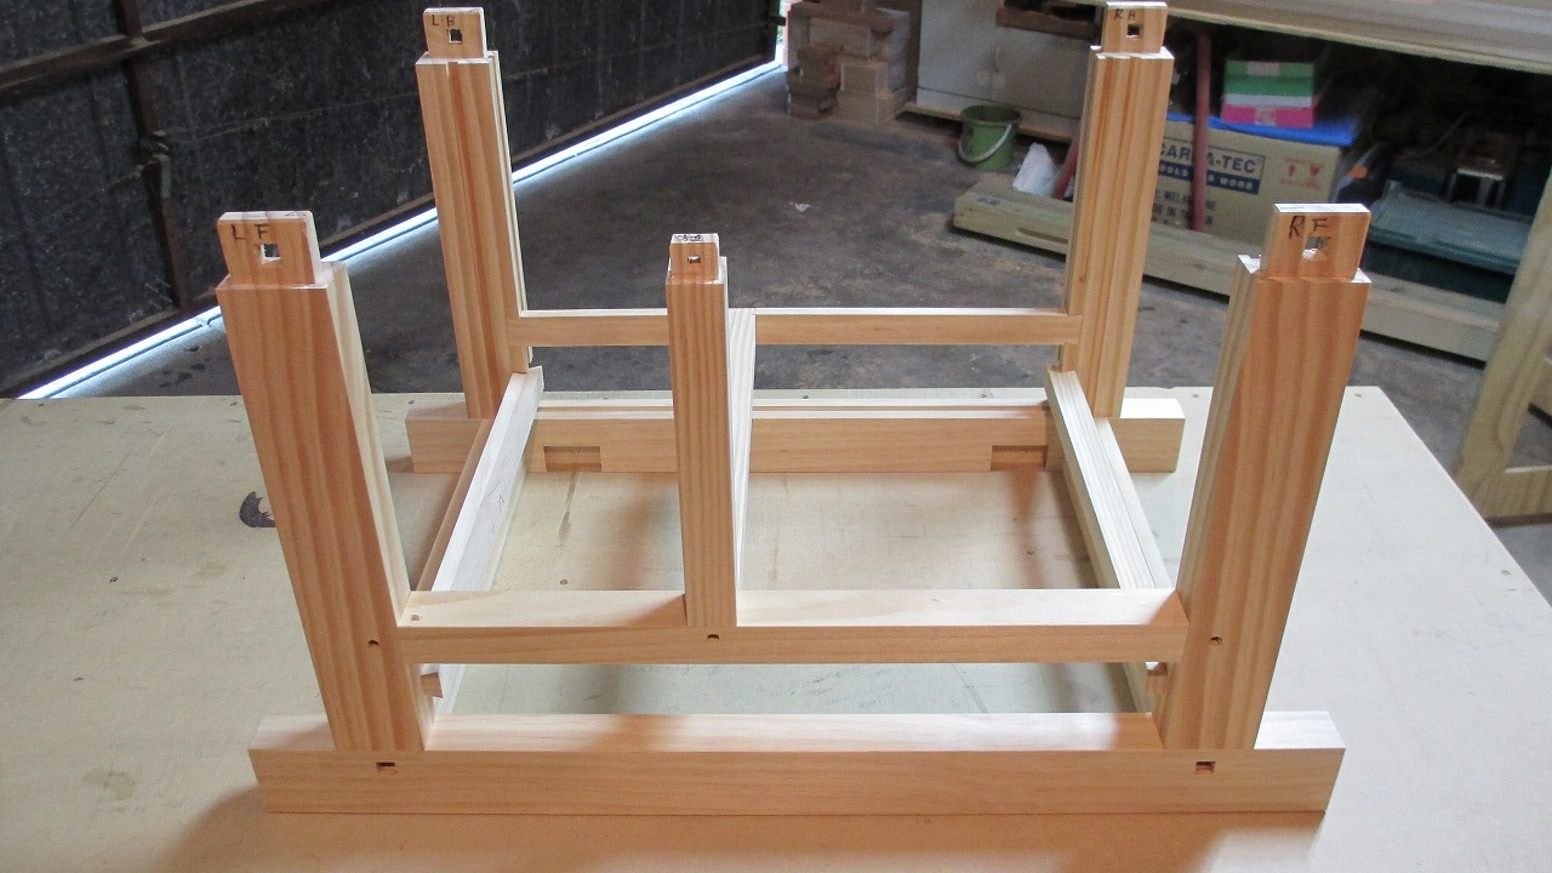 online japanese woodworking coursesdiy japanese joinery